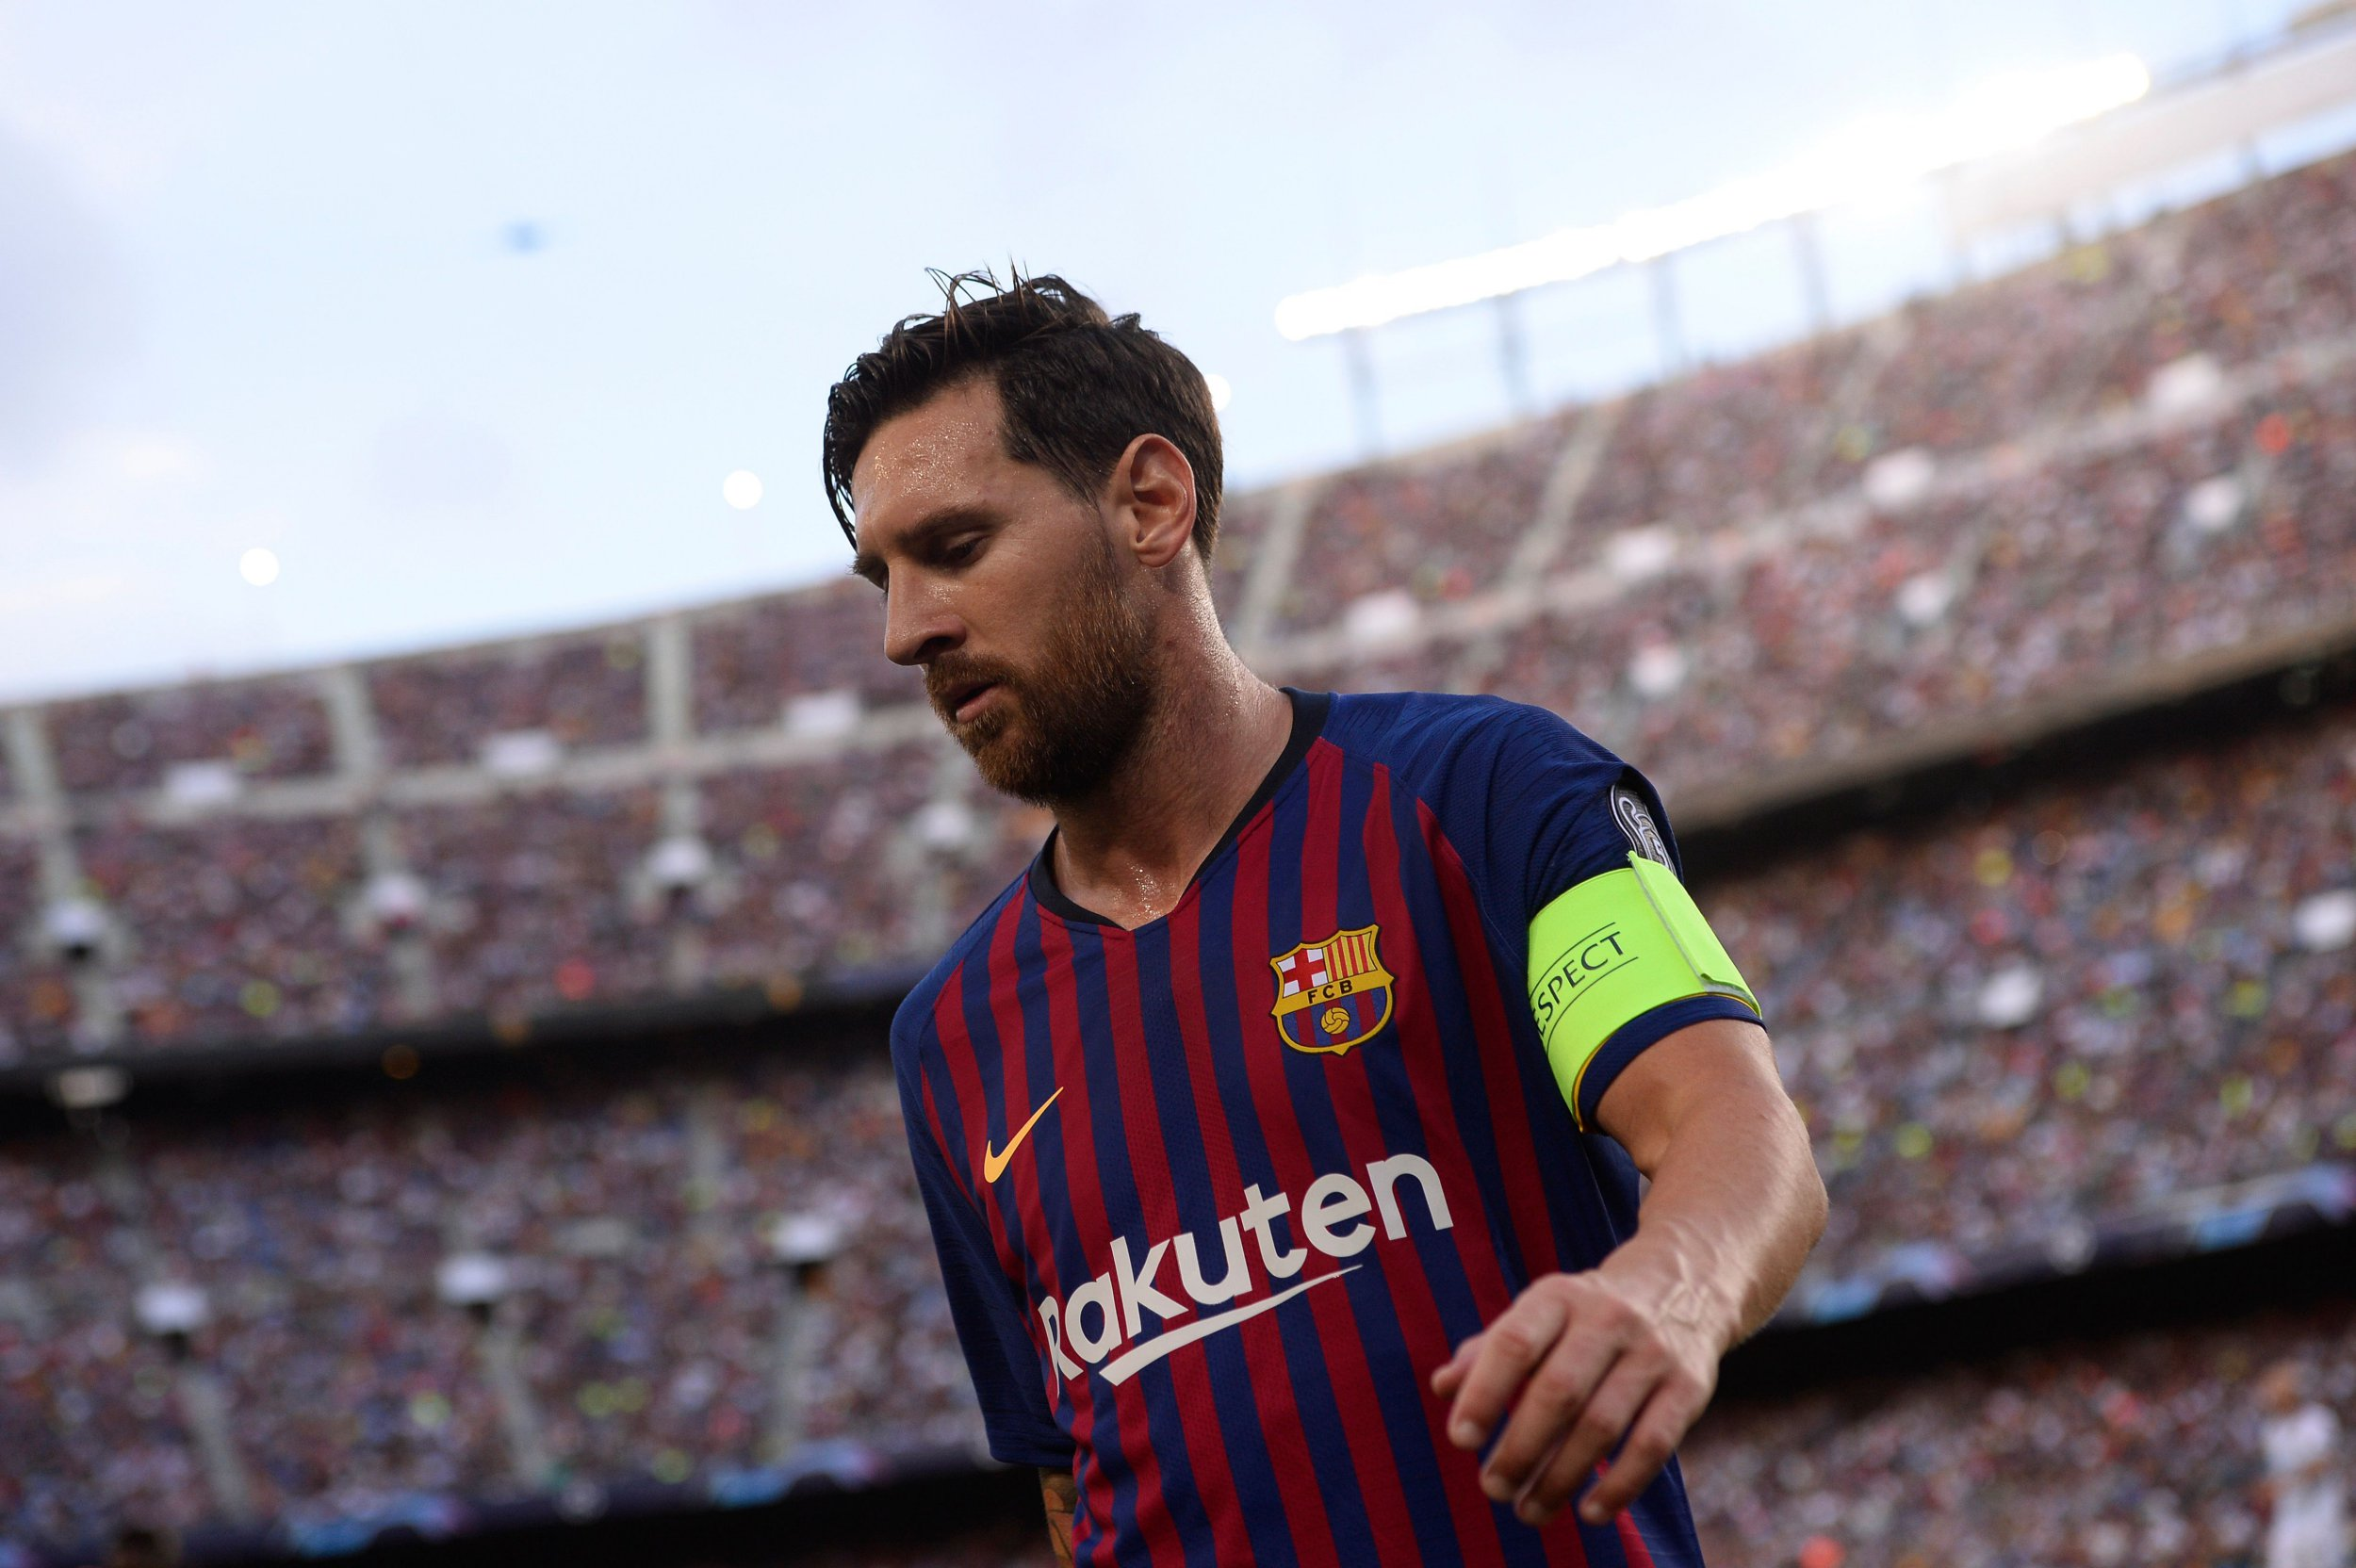 Barcelona's Argentinian forward Lionel Messi runs during the UEFA Champions' League group B football match FC Barcelona against PSV Eindhoven at the Camp Nou stadium in Barcelona on September 18, 2018. (Photo by Josep LAGO / AFP)JOSEP LAGO/AFP/Getty Images